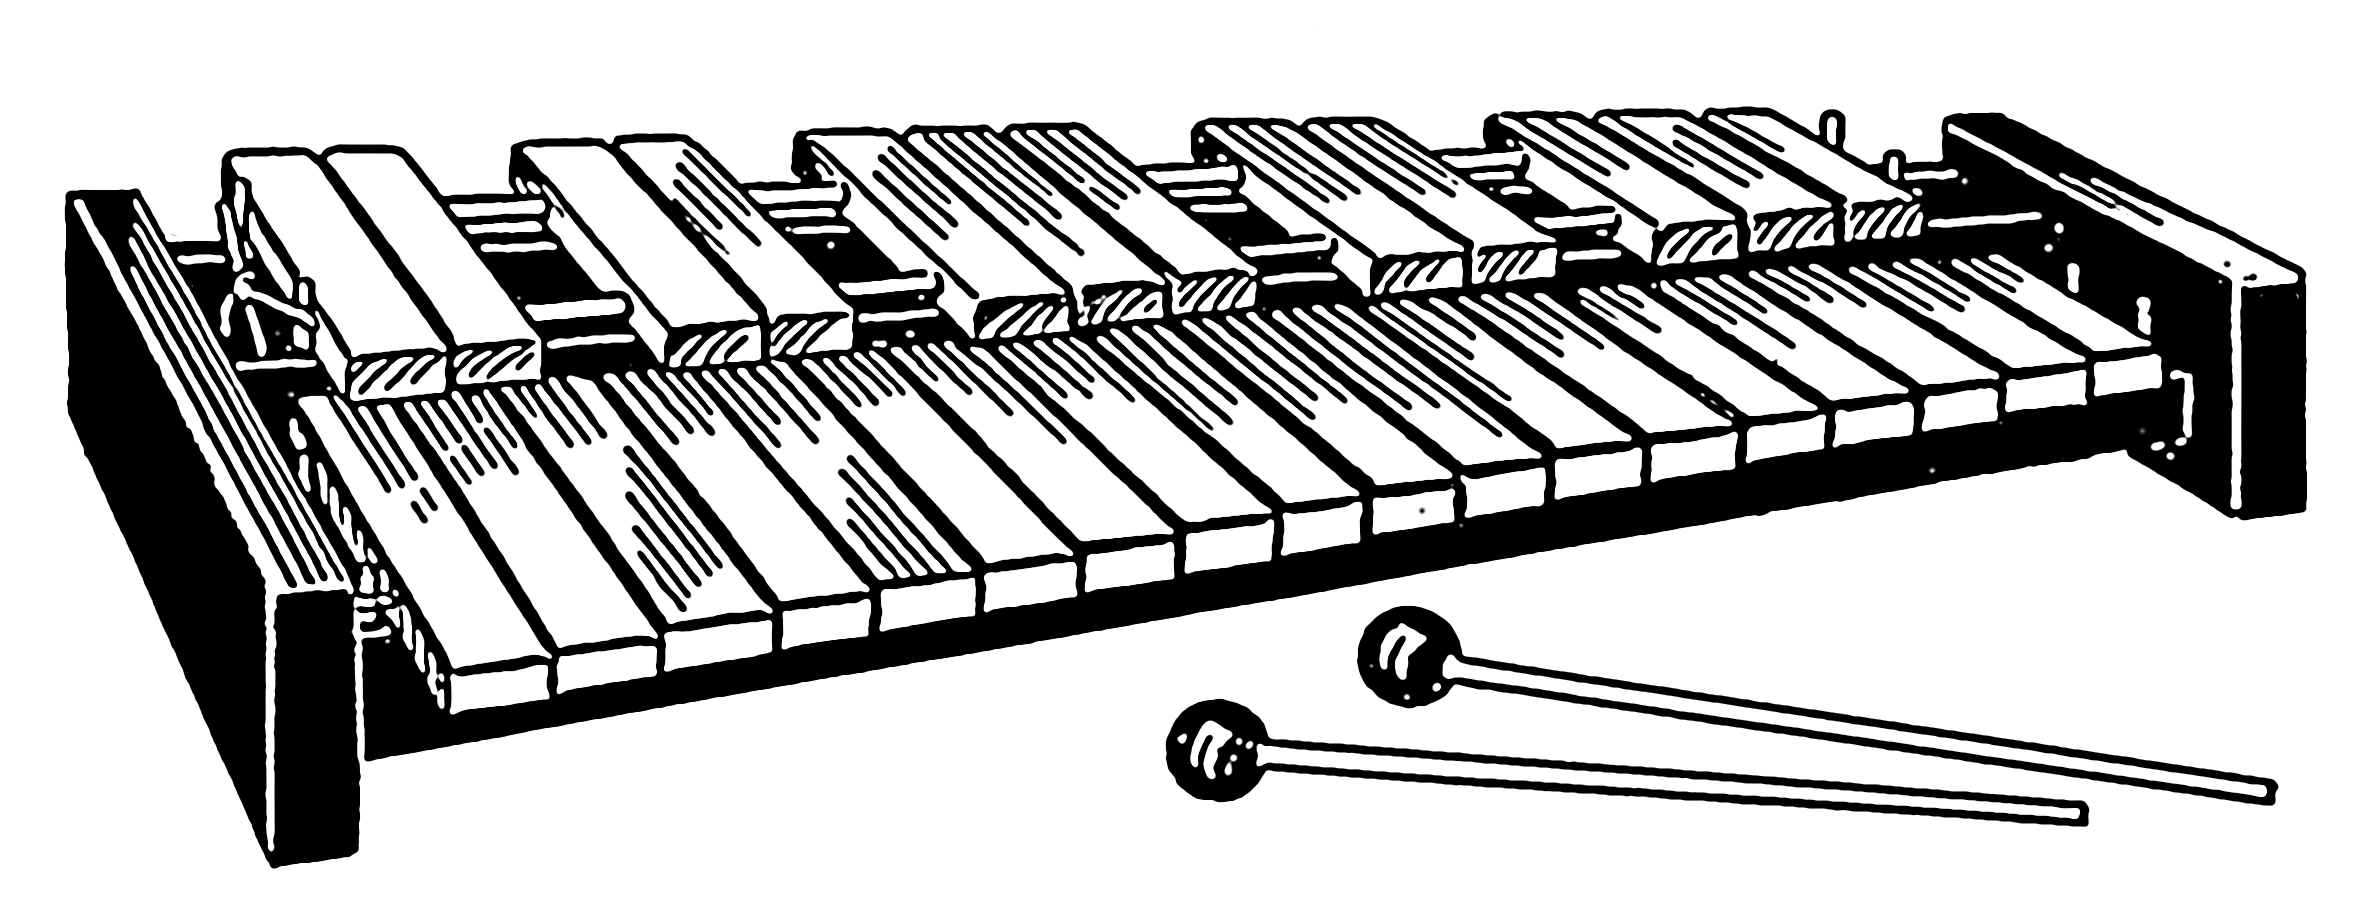 Line Drawing Of Xylophone : File xylophone psf wikimedia commons